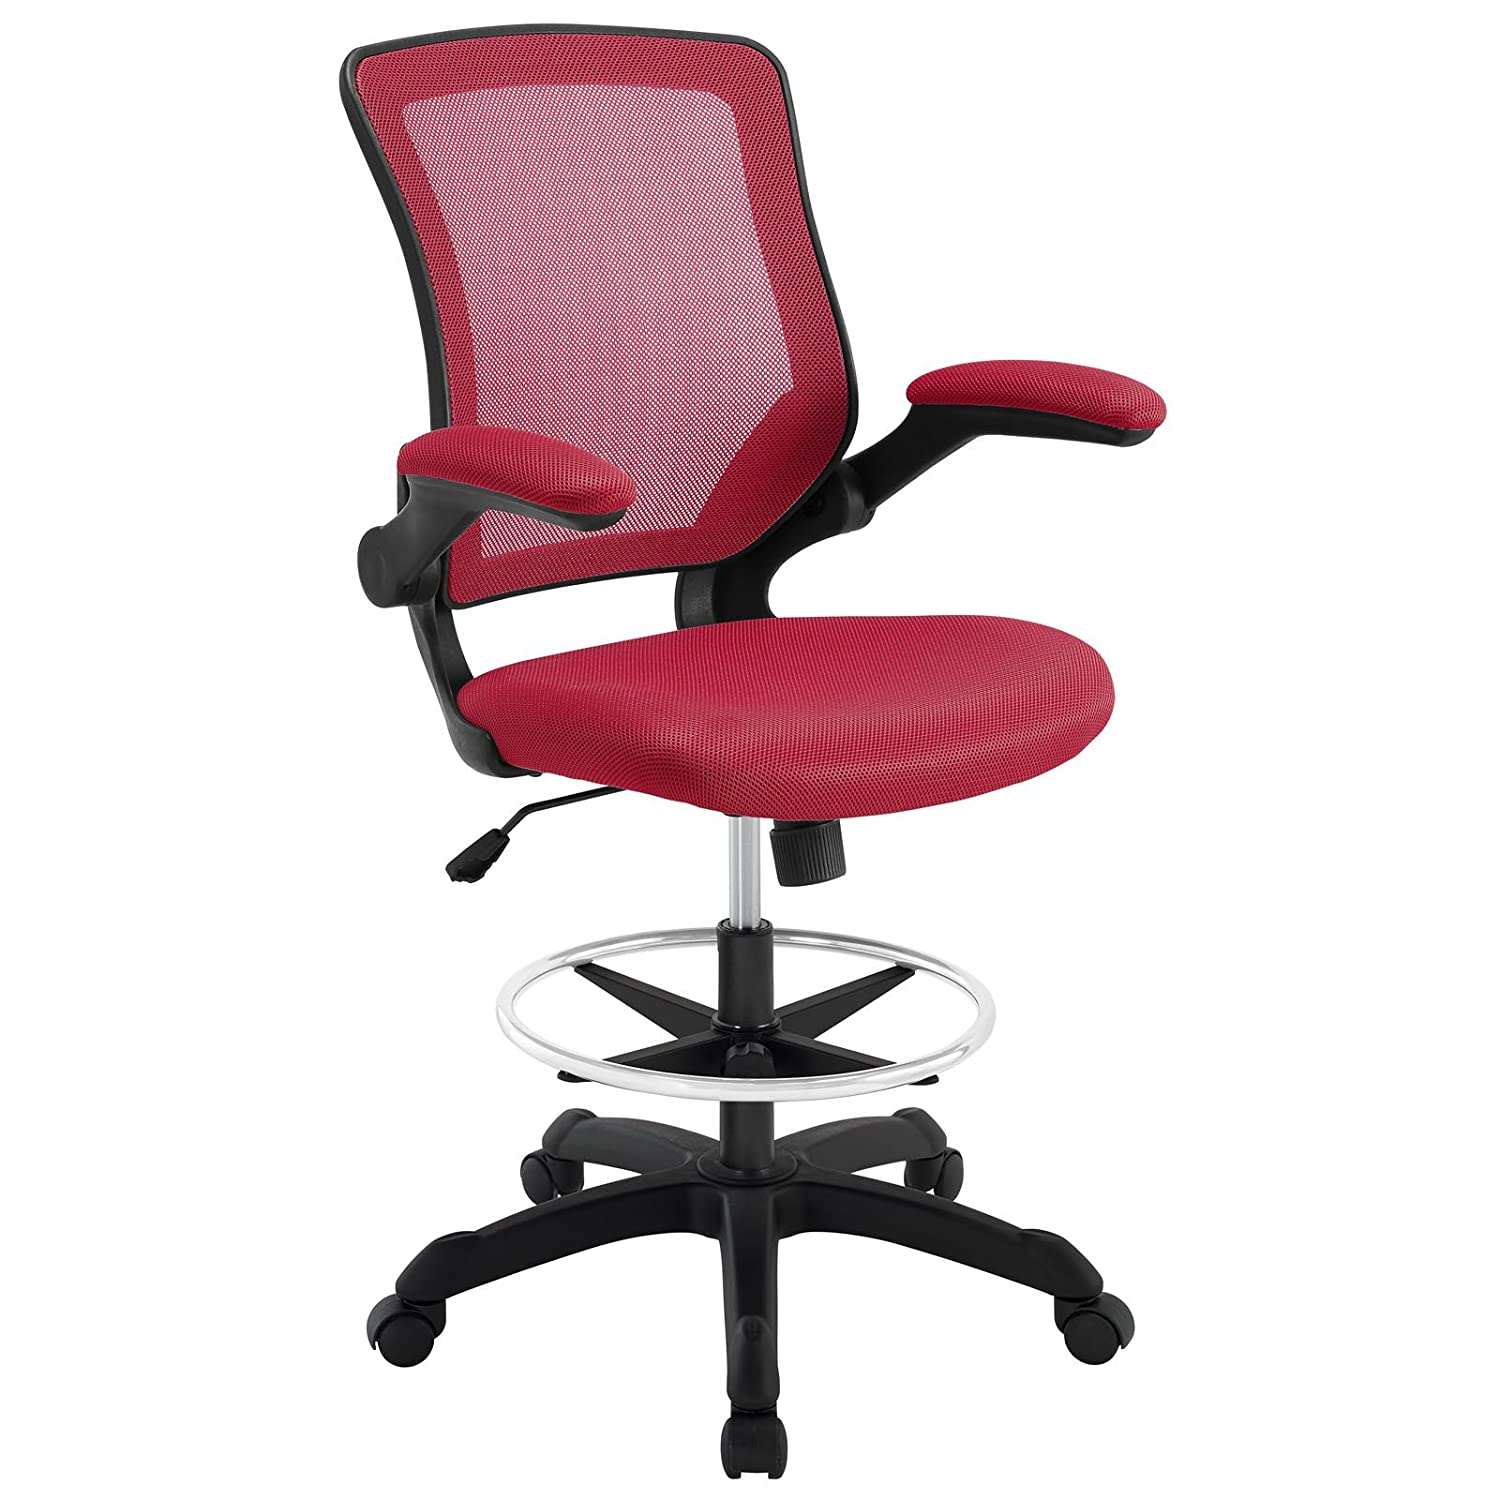 task furniture frame desk chair red a office cobi modern images poppin white